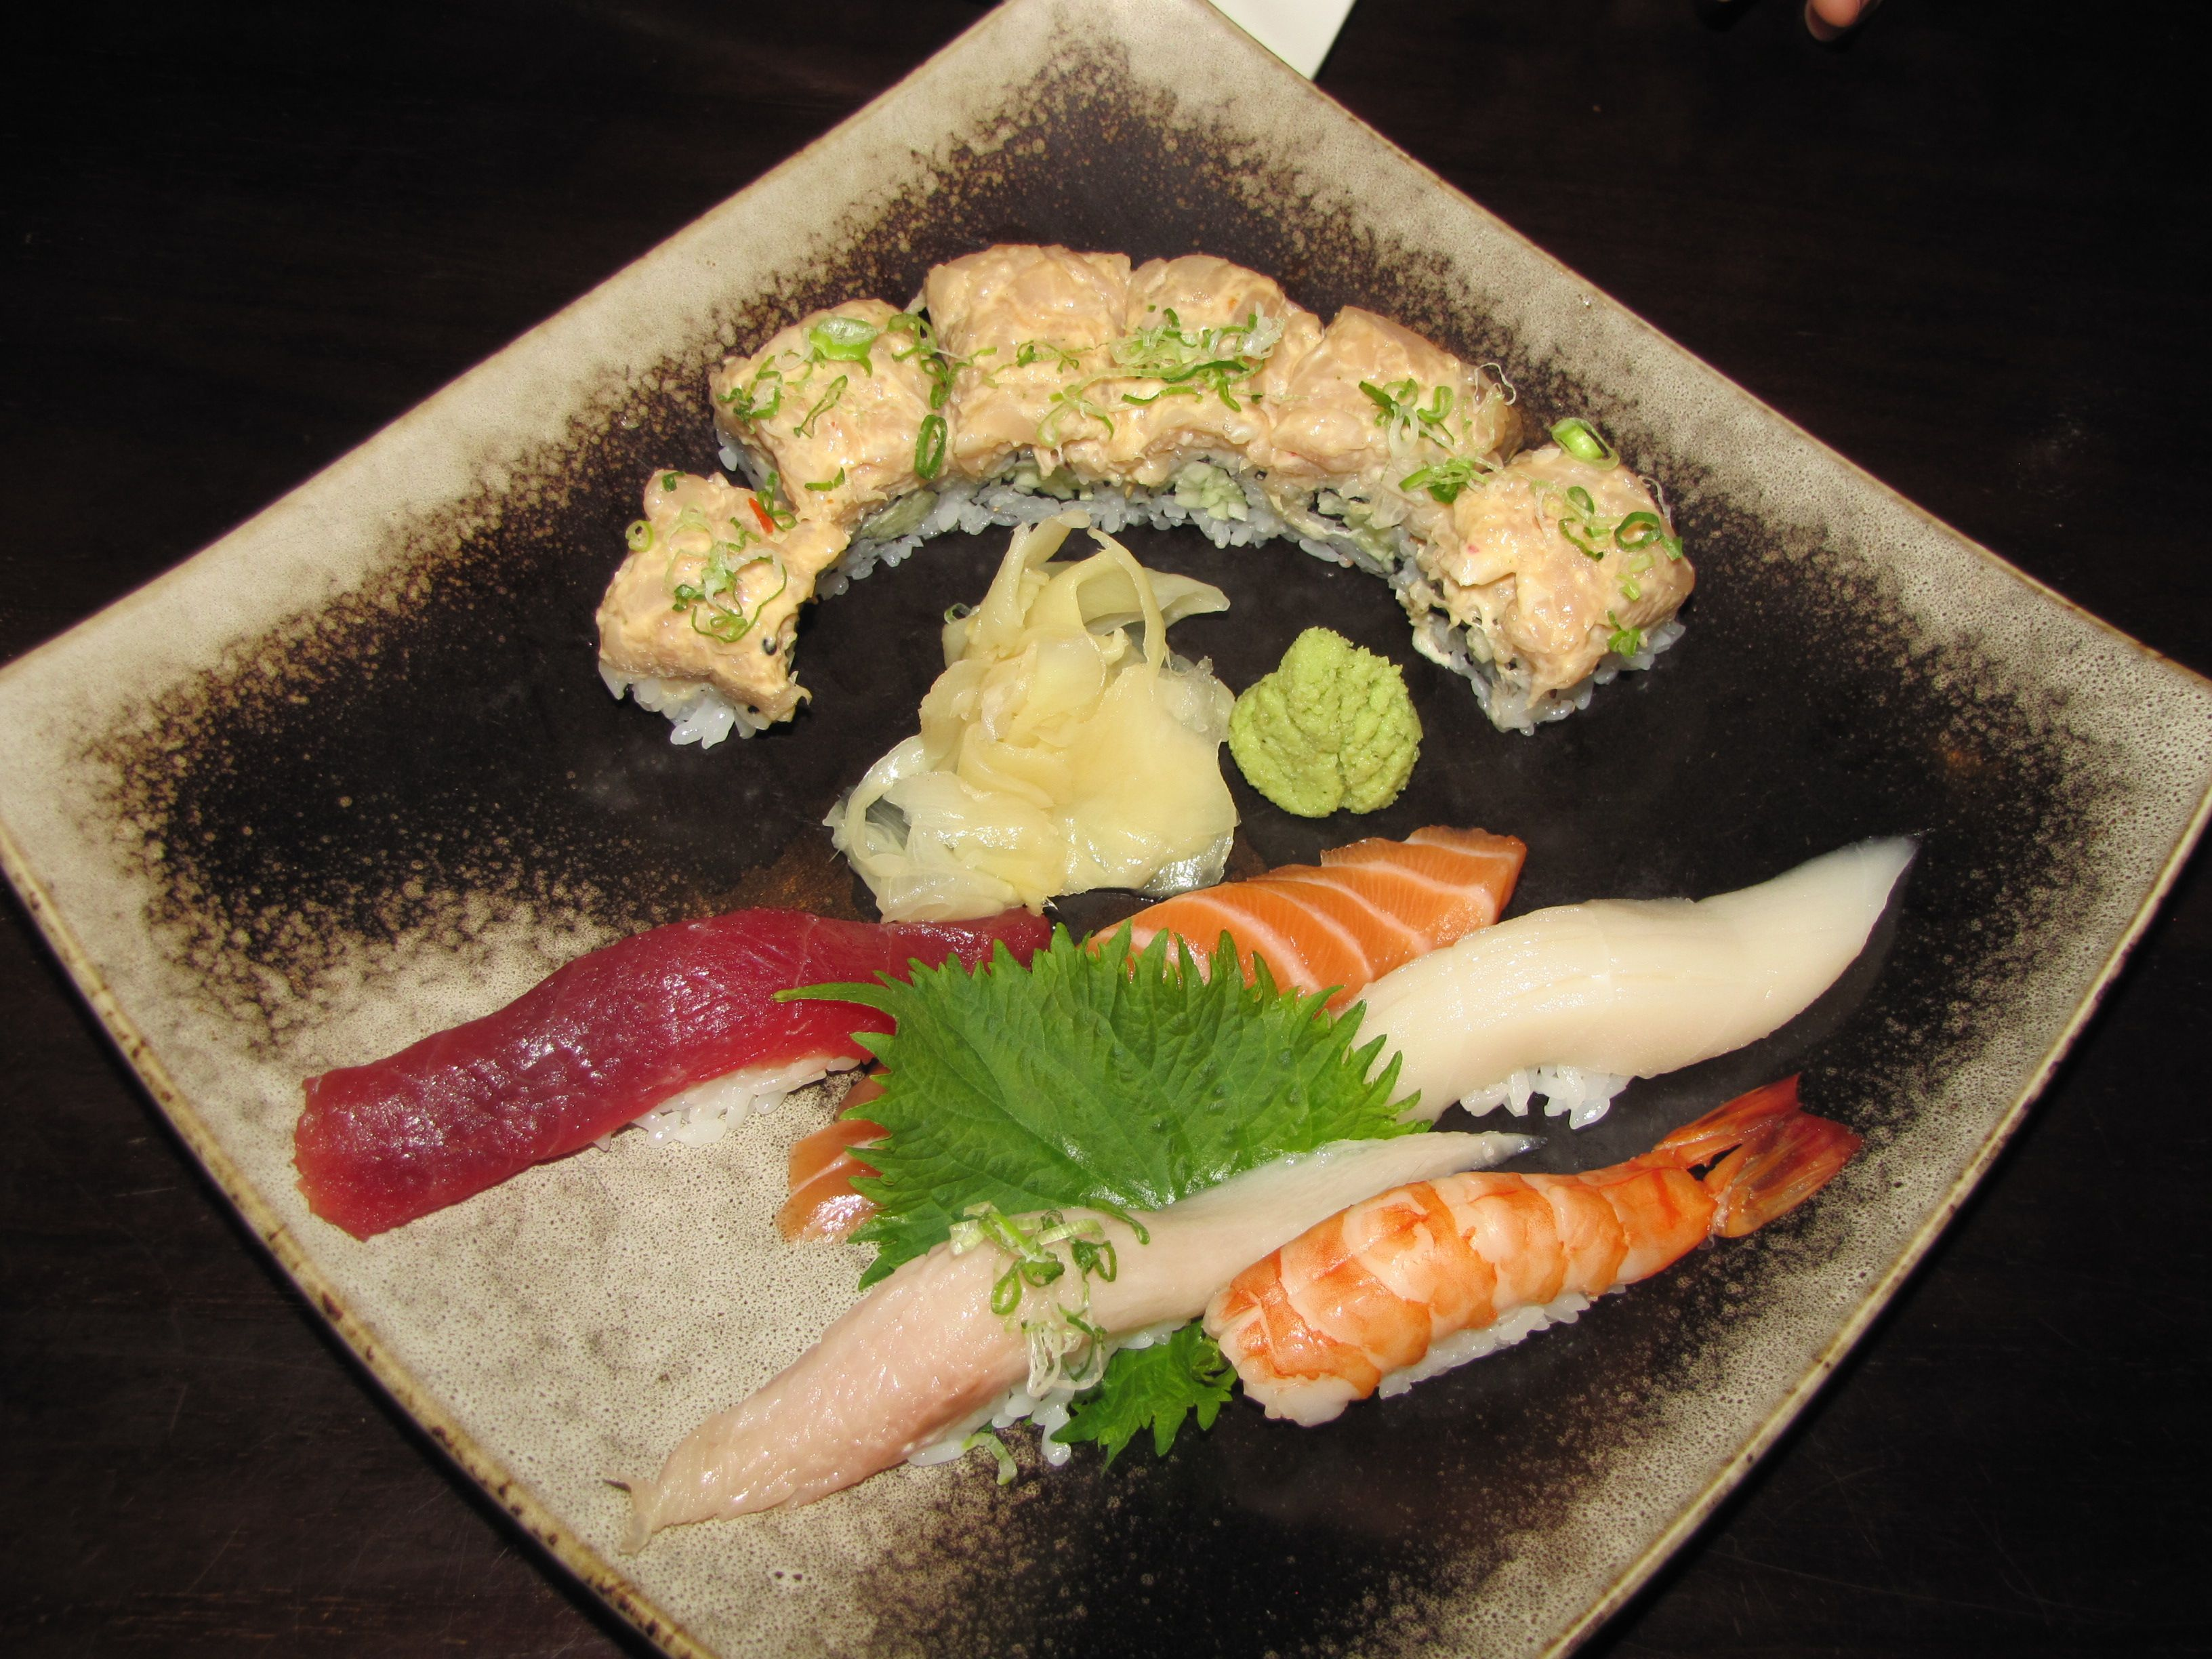 Lunch Hot Spots Aozora Modern Sushi In Montclair Hot From The Kettle Lunch Sushi Food Photo